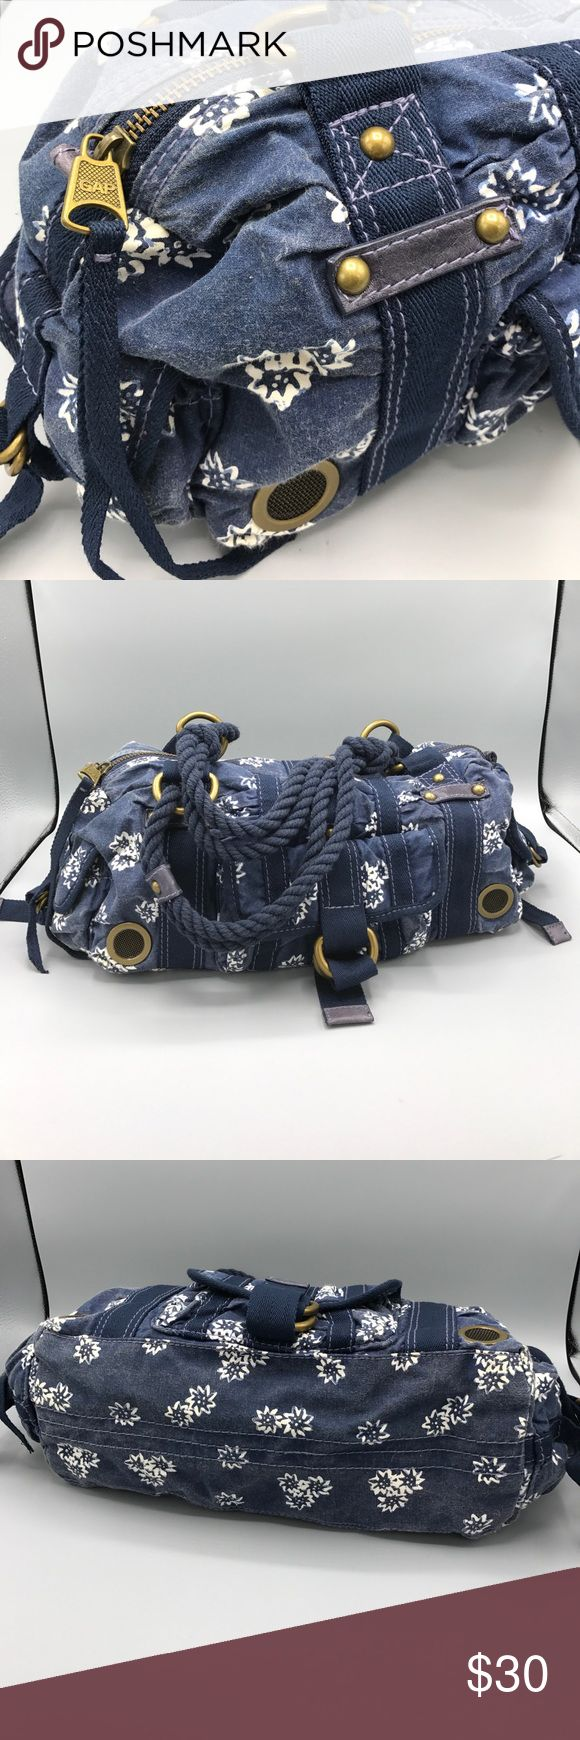 GAP canvas purse rope handles CLEAN brass detail Super cute, clean Preowned canvas gap handbag! They don't make them like this anymore.  Navy blue with white flower like print - ripe handles in great shape and brass toned hardware is heavy and sturdy. GAP Bags Shoulder Bags